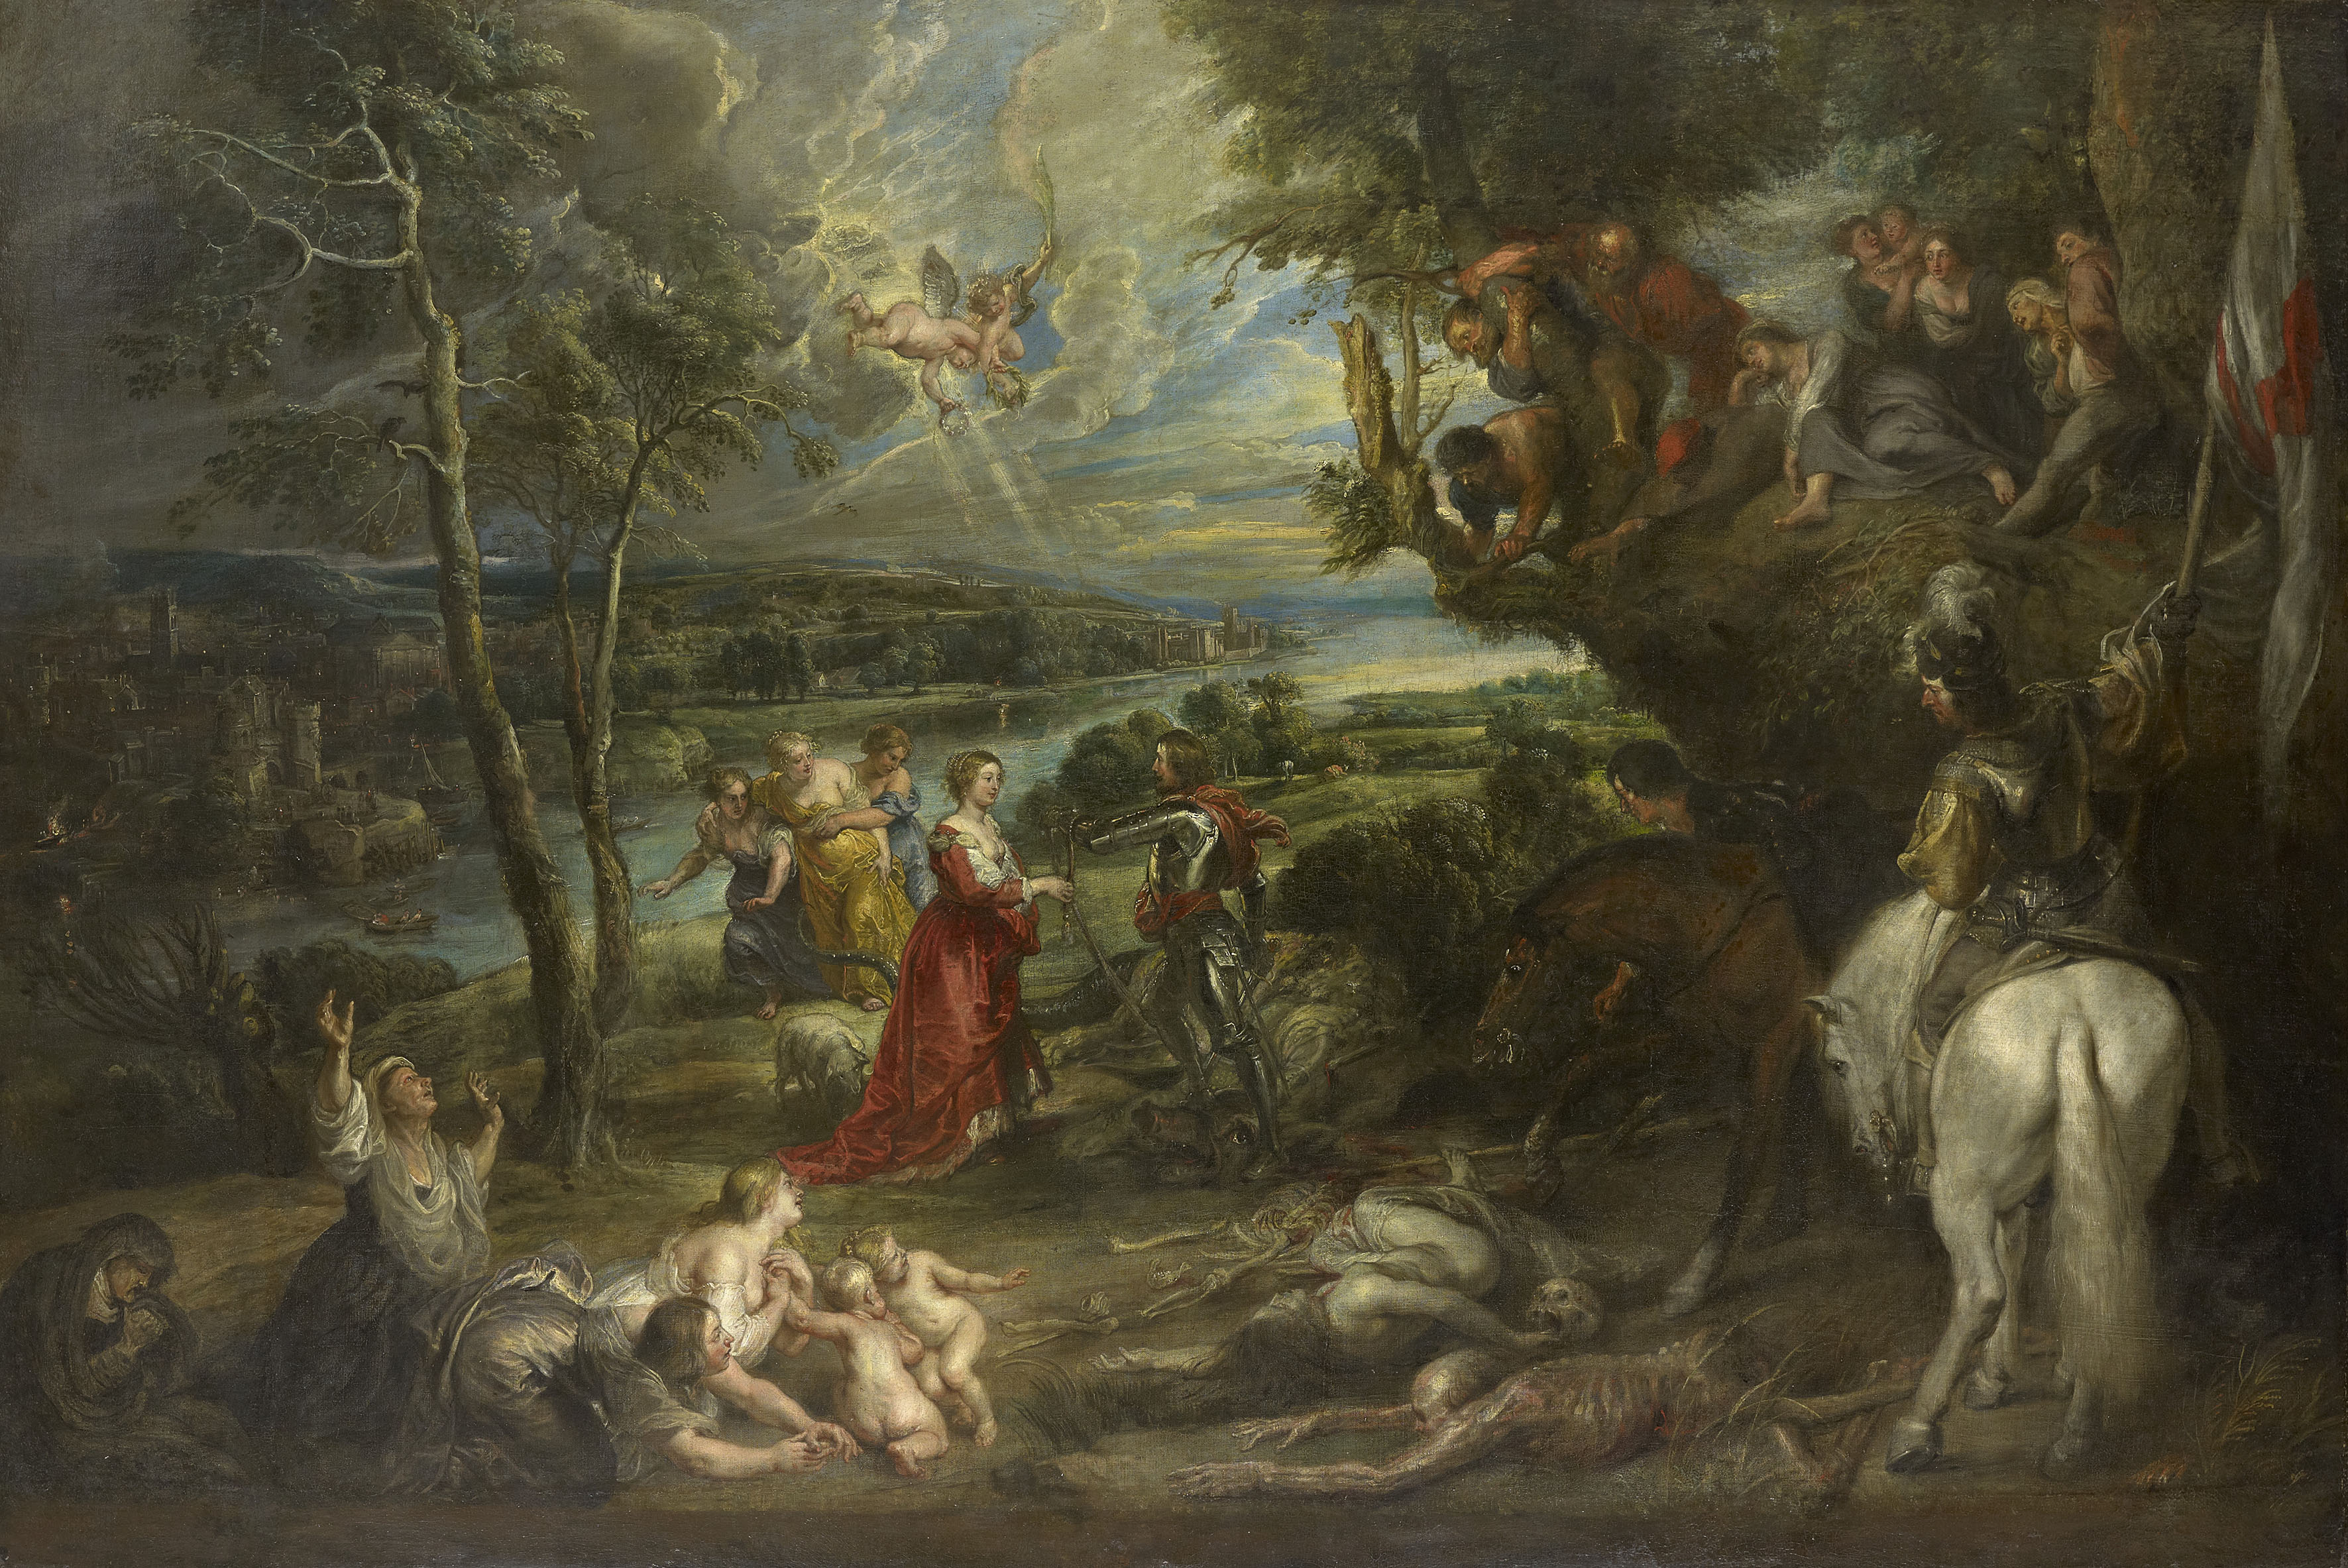 Sir Peter Paul Rubens, Landscape with St George and the Dragon, 1630-5